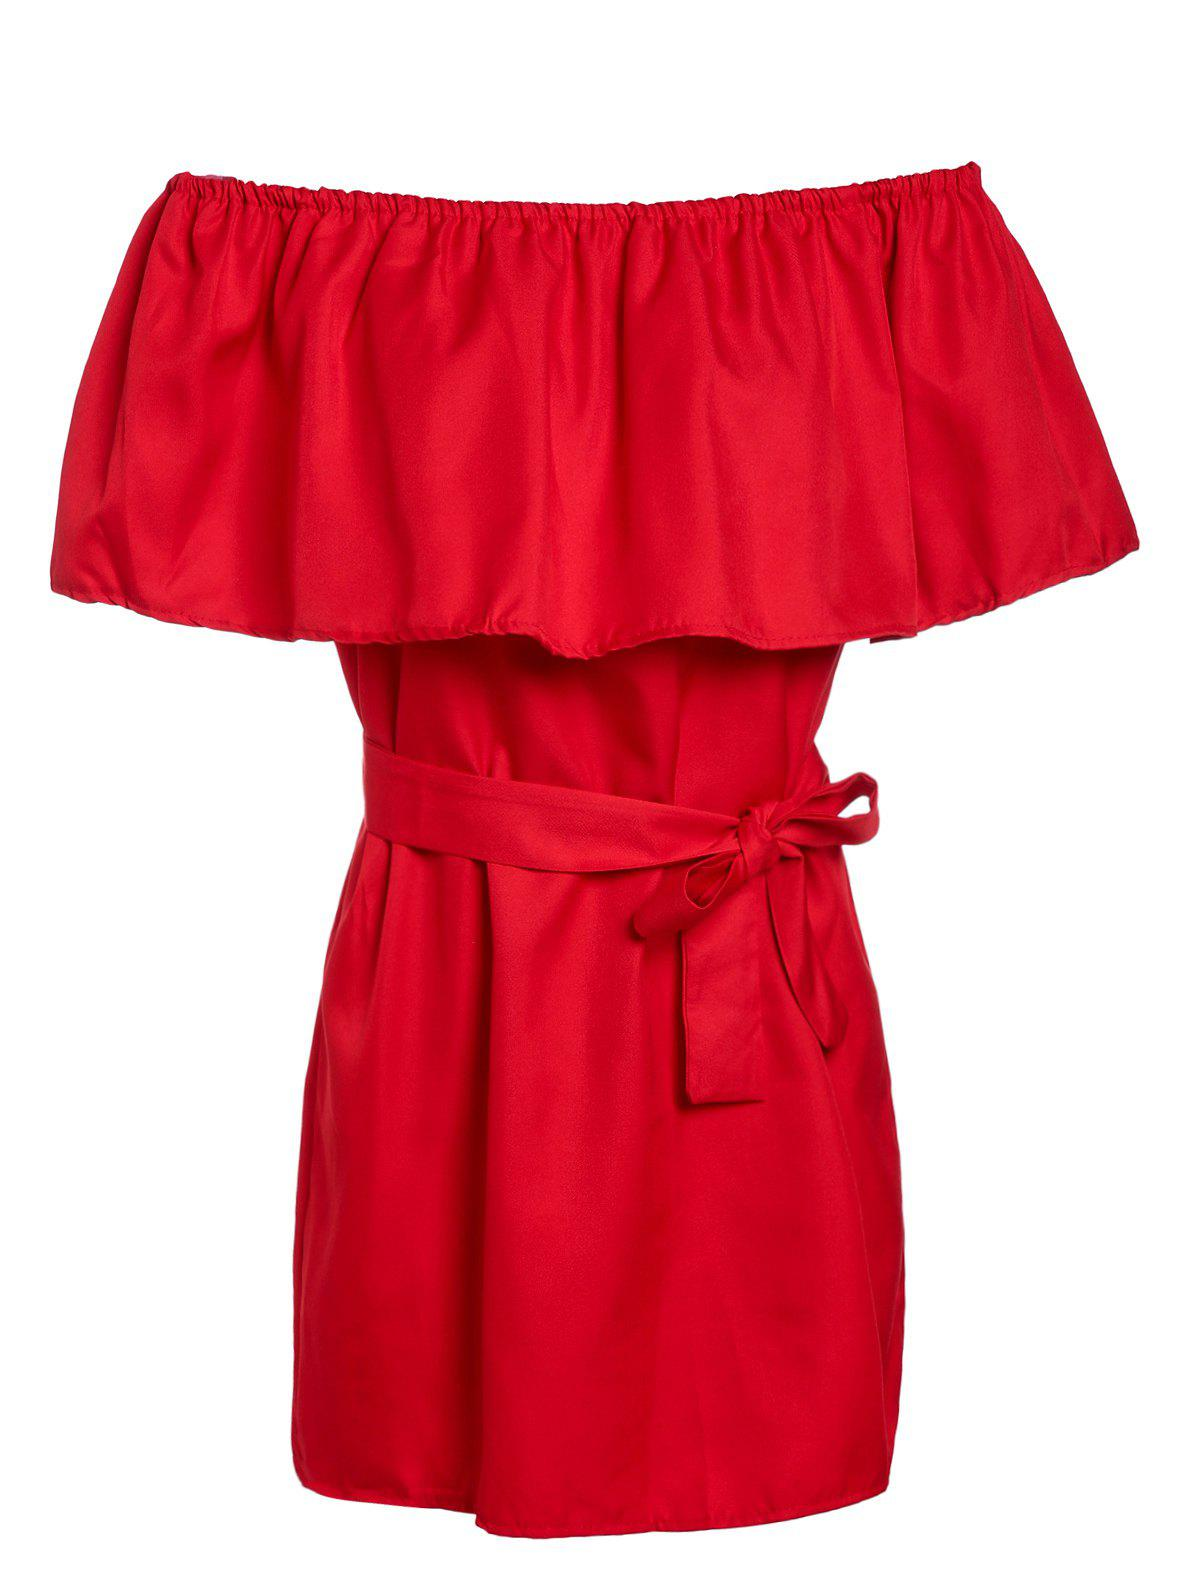 Mini Flounce Off The Shoulder Dress - RED ONE SIZE(FIT SIZE XS TO M)